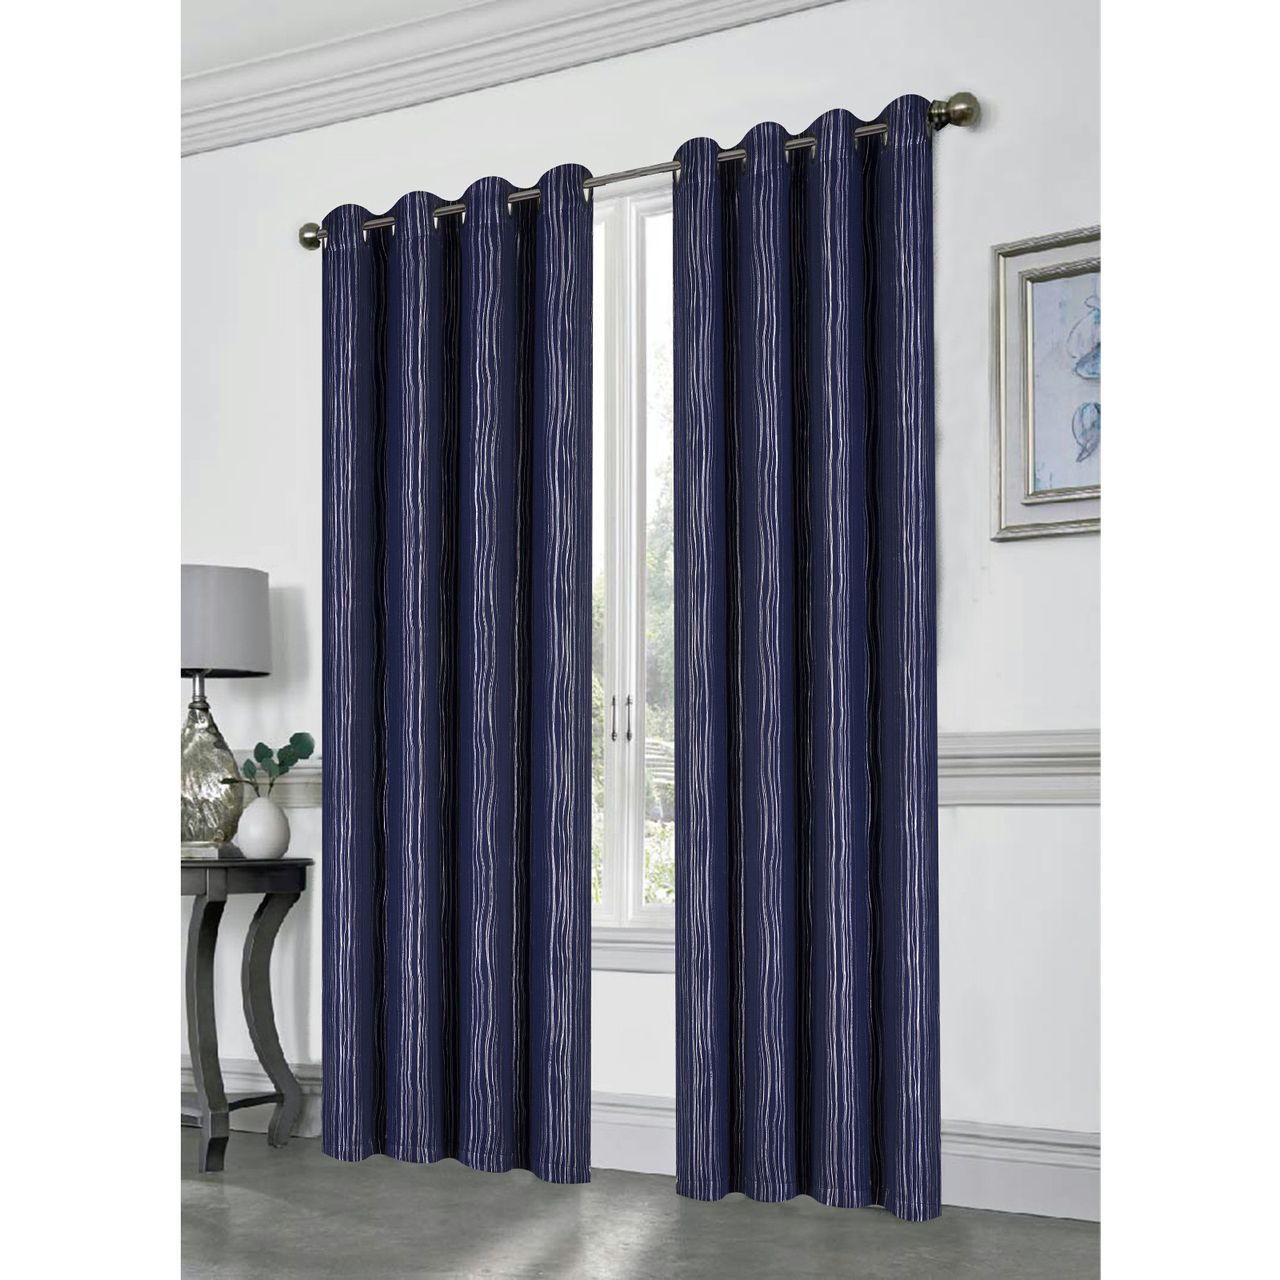 How Many Curtain Panels Do I Need Panel Curtains Curtains Blackout Curtains